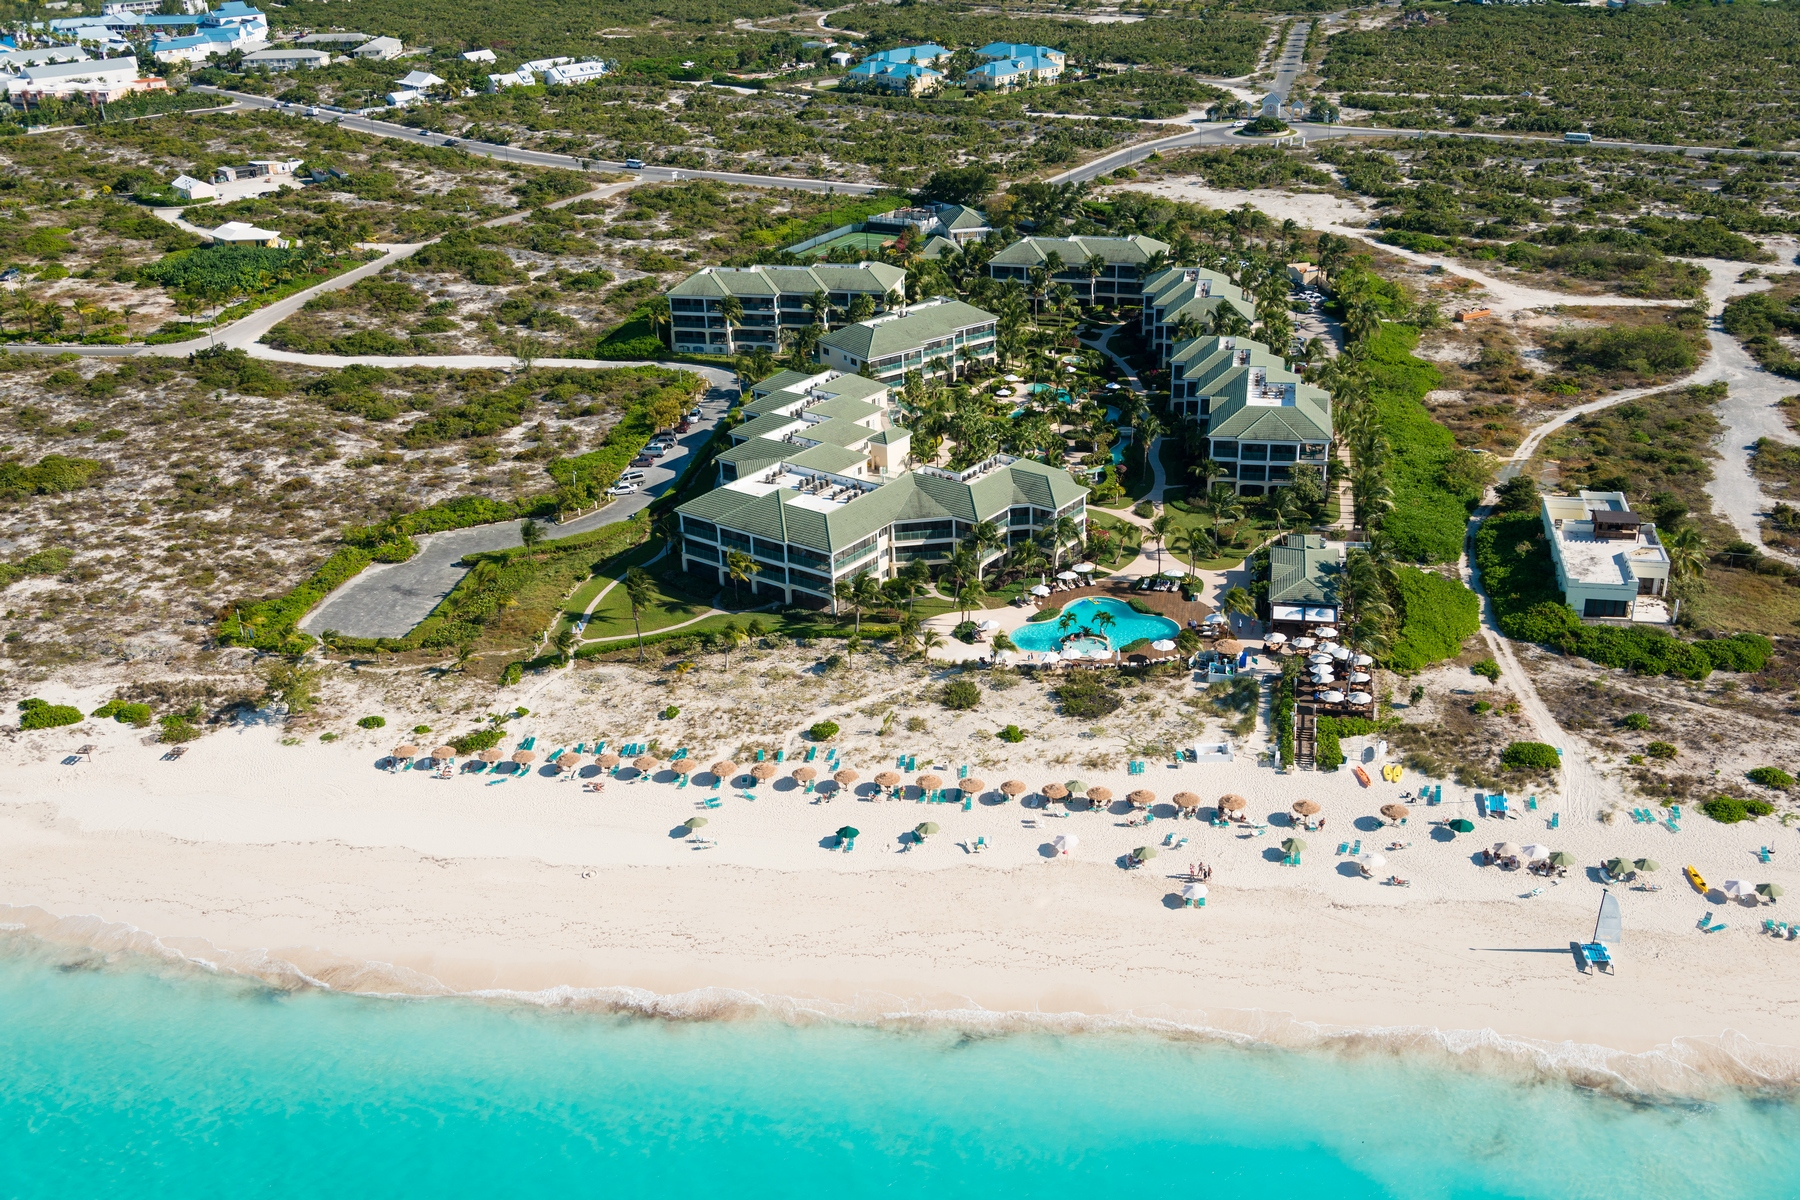 Condominium for Sale at The Sands at Grace Bay - Suite 3113 Oceanfront Grace Bay, Providenciales, TC Turks And Caicos Islands